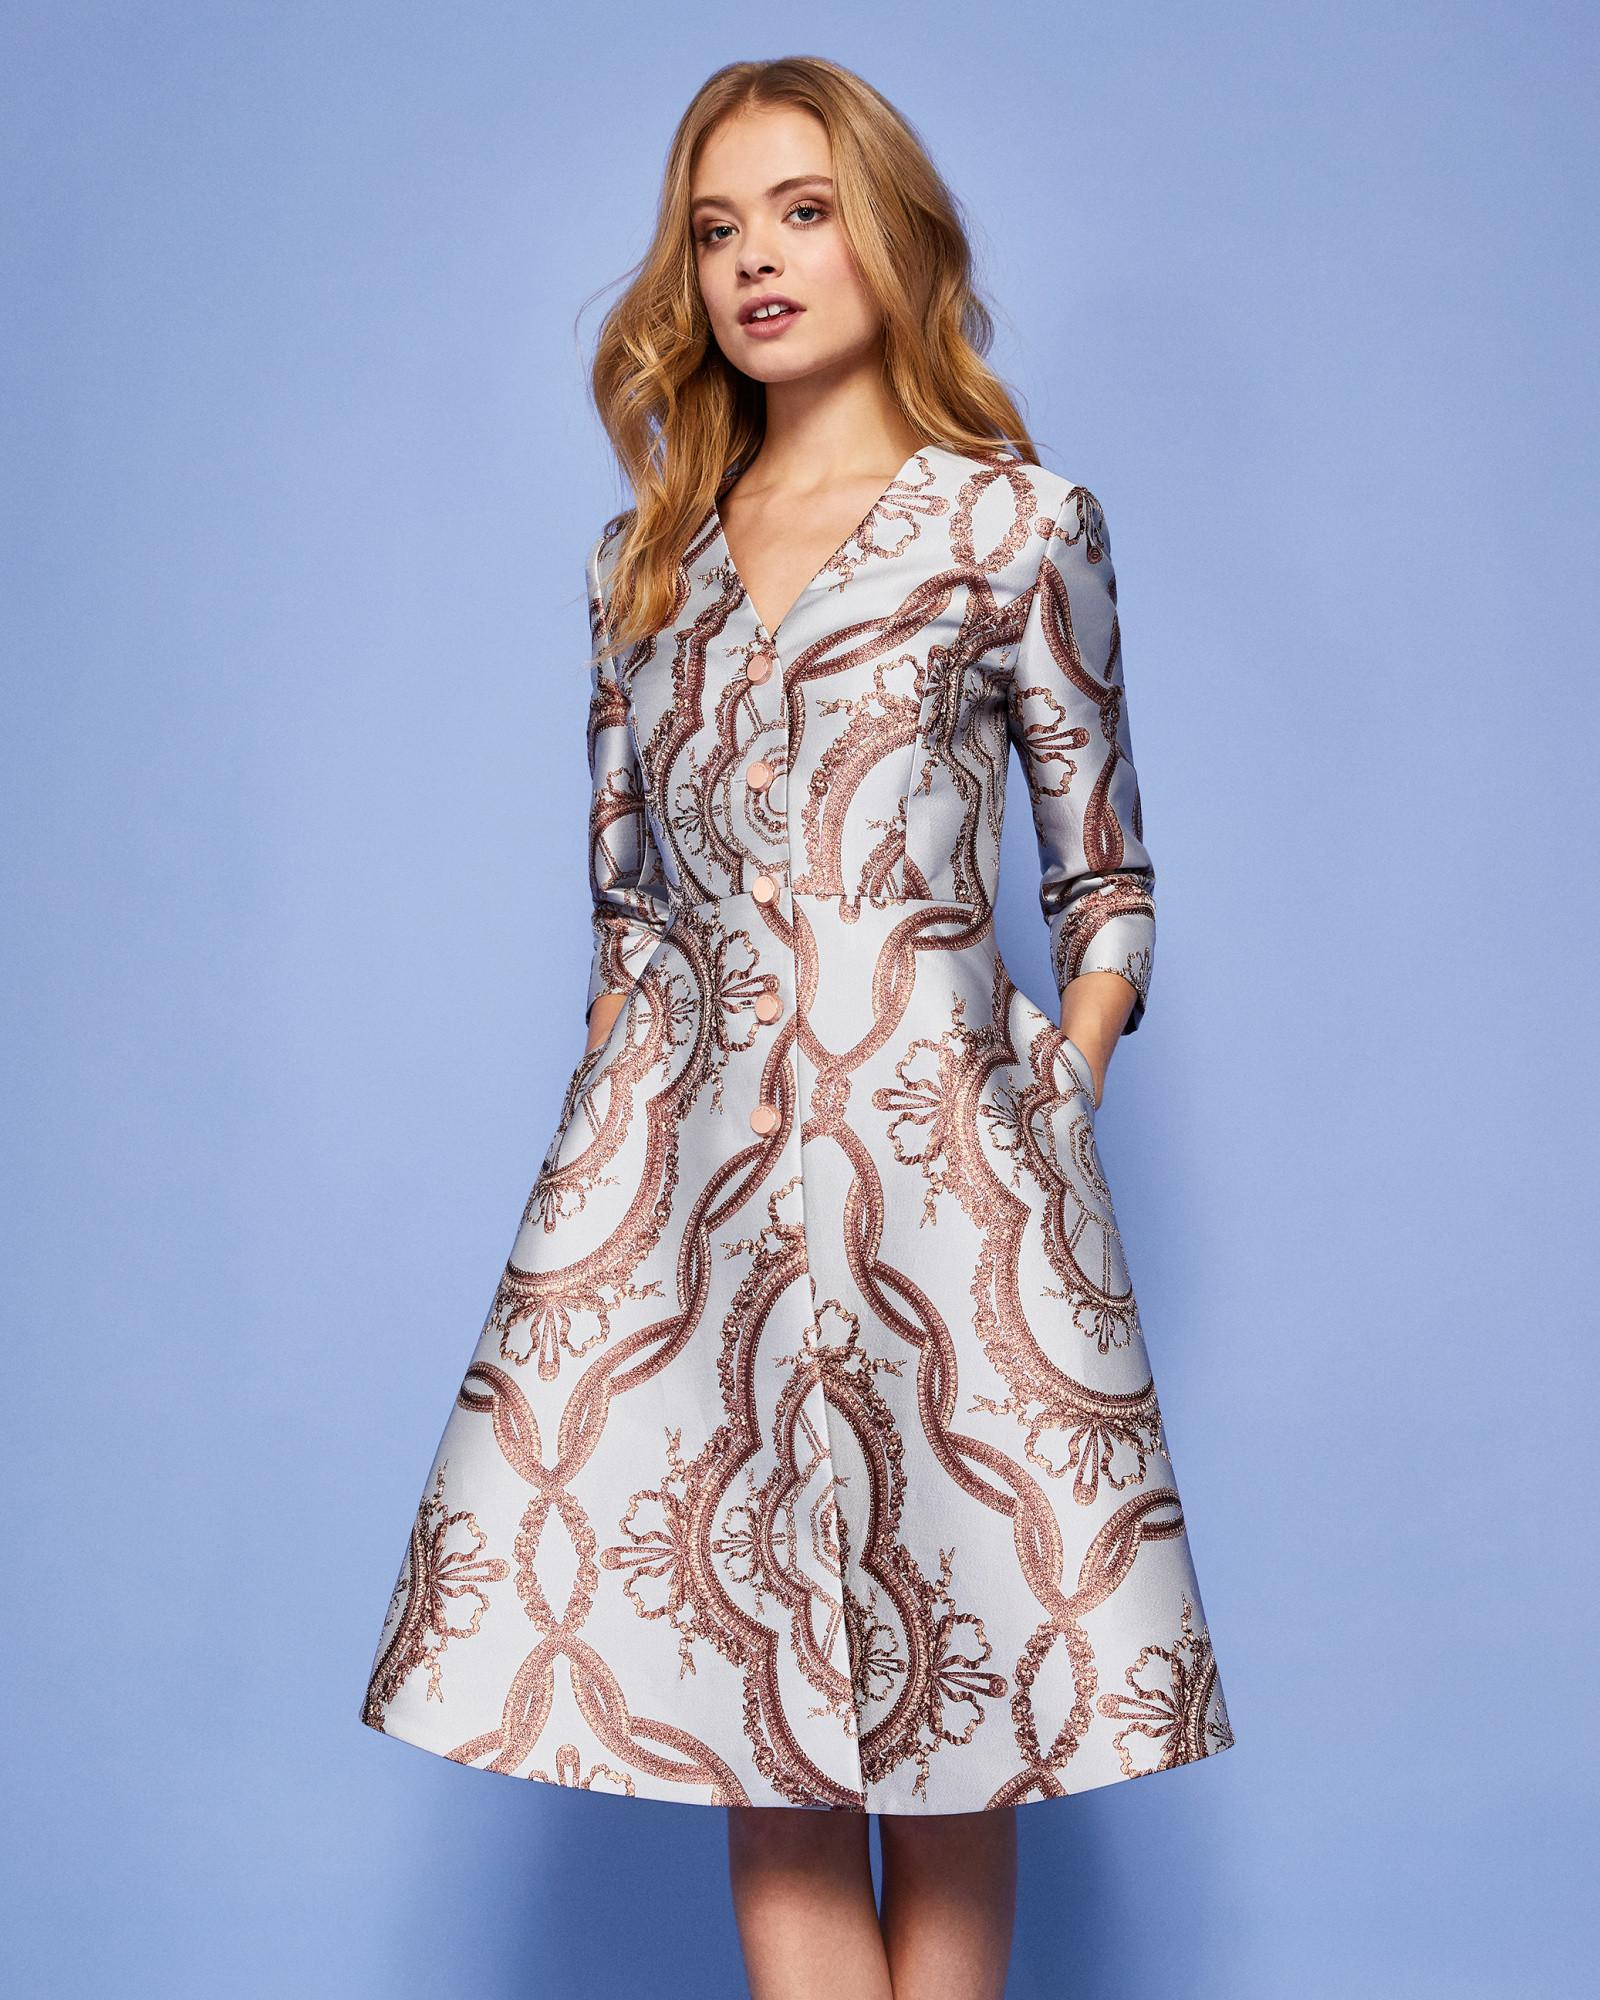 Ted Baker Versailles Jacquard Dress Coat in Blue - Lyst 8fa980bd2